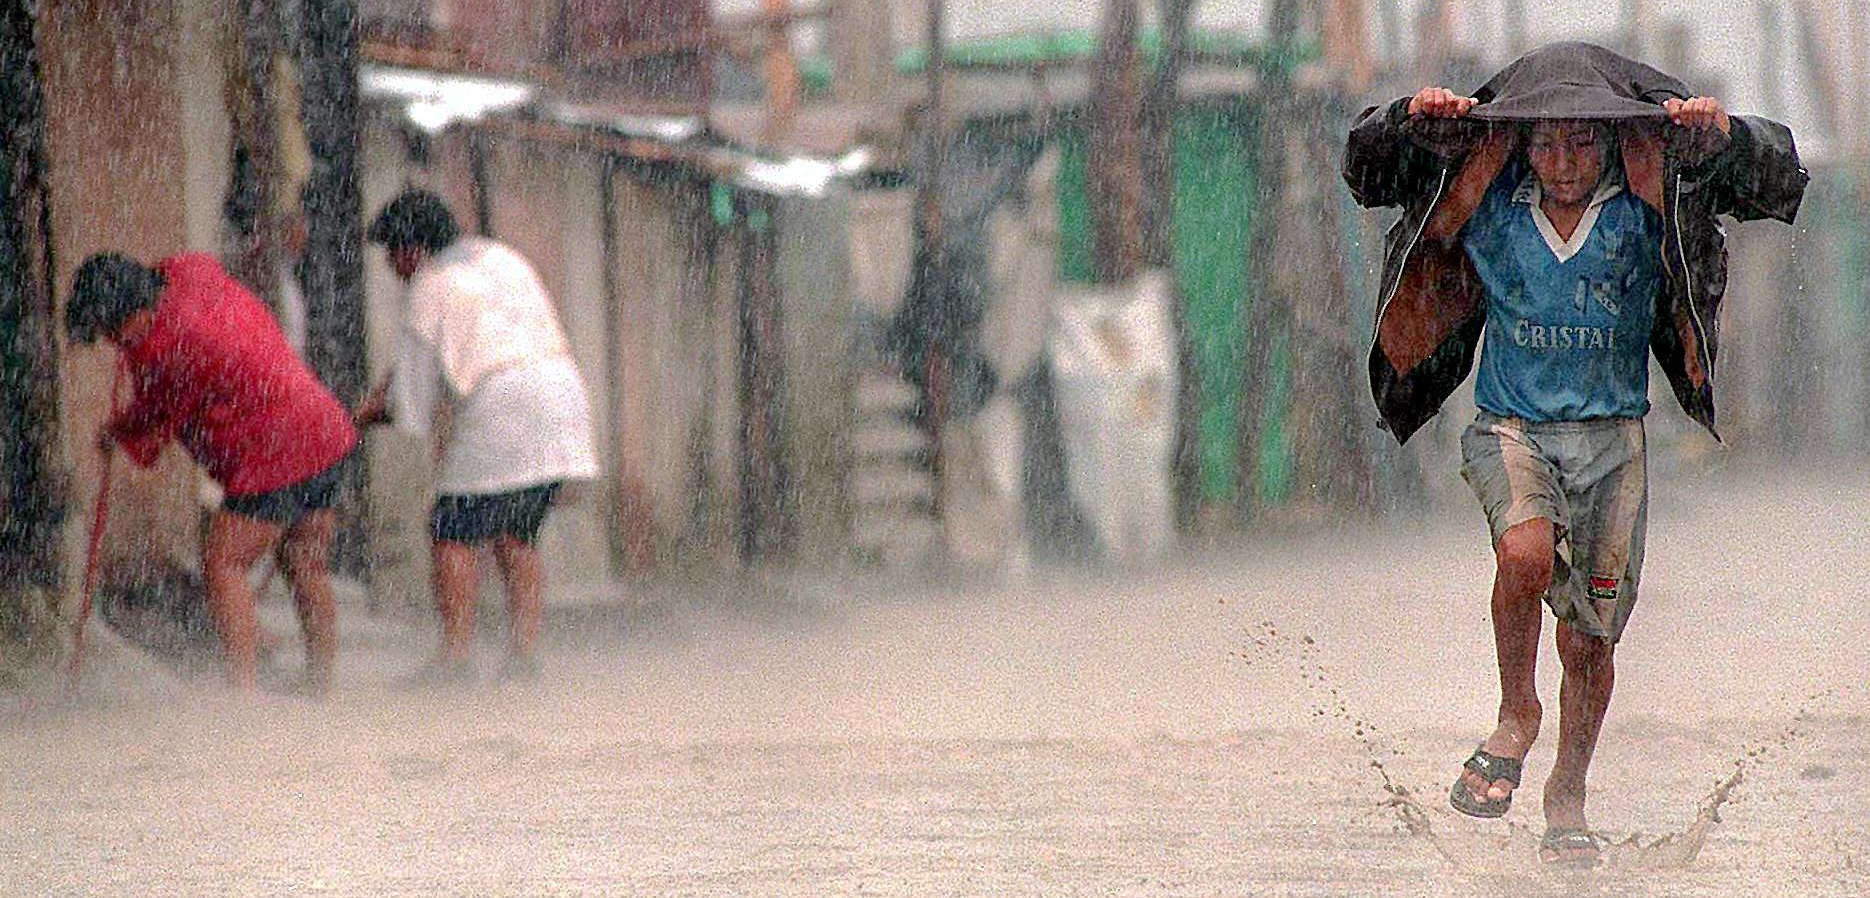 In northern Peru, a devastating El Niño in 1997 and 1998 brought torrential rain, flooding, and outbreaks of cholera and malaria. Photo by Jaime Razur/Getty